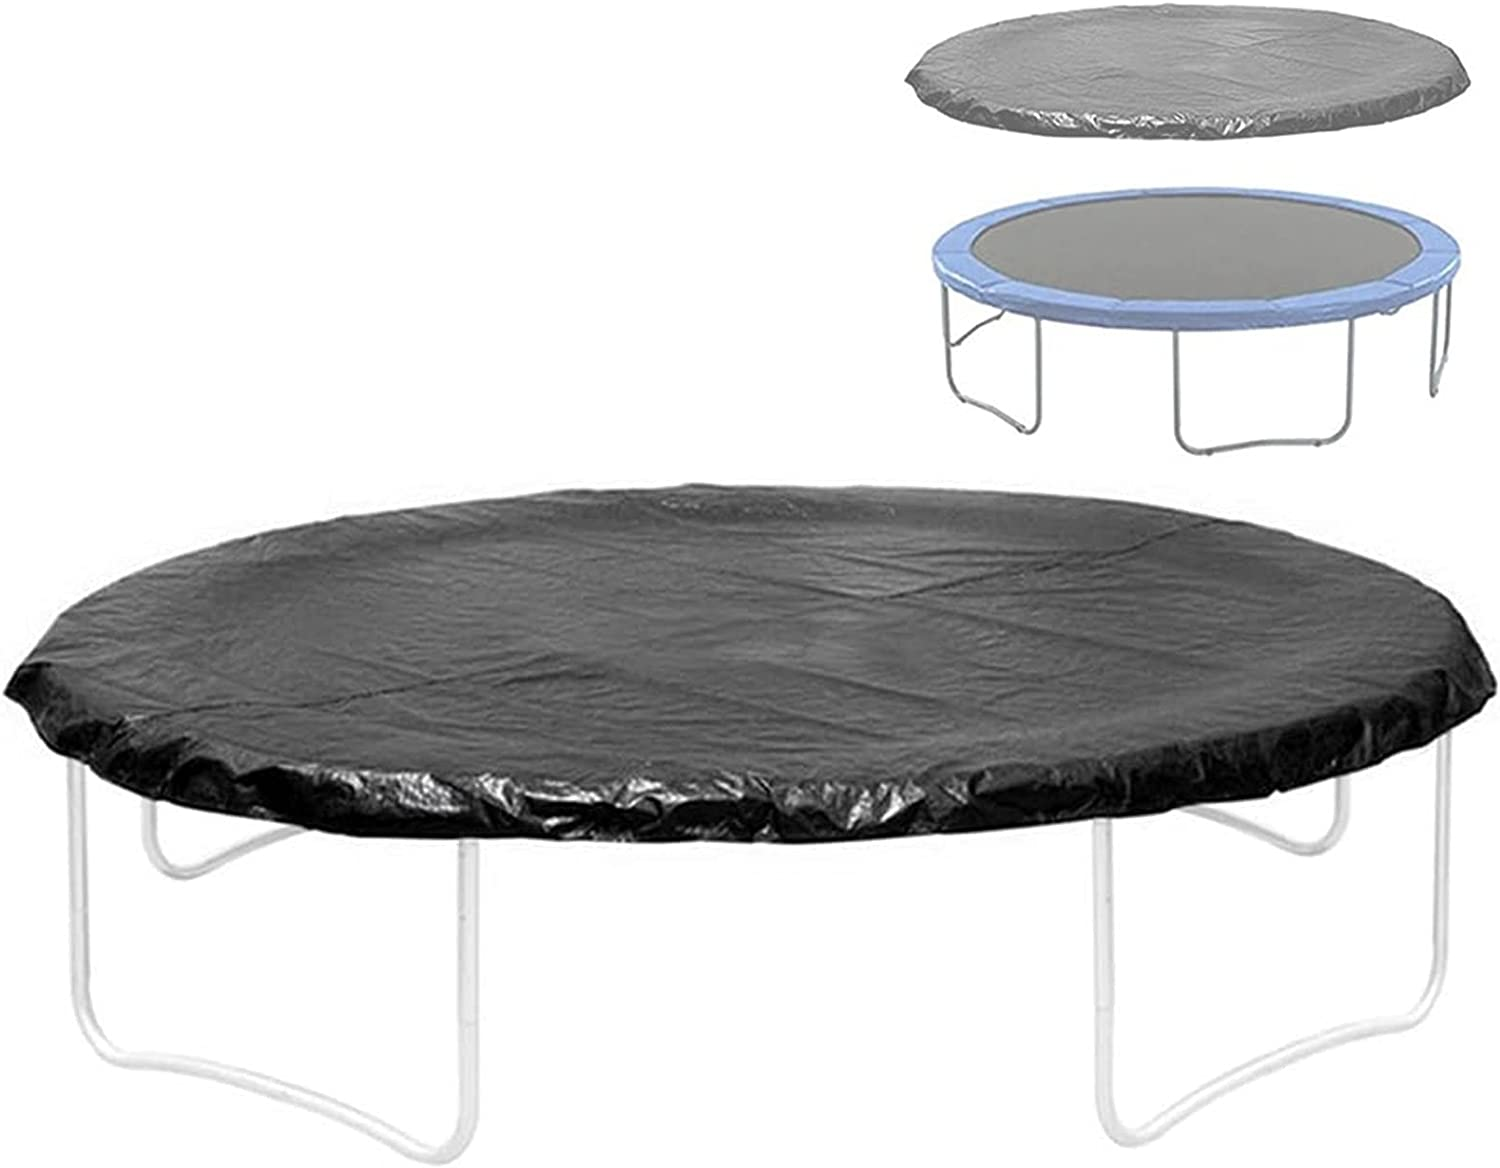 KHXJYC Round New popularity Frame Trampoline Cover Outdoo Cloth In a popularity Rain Dustproof